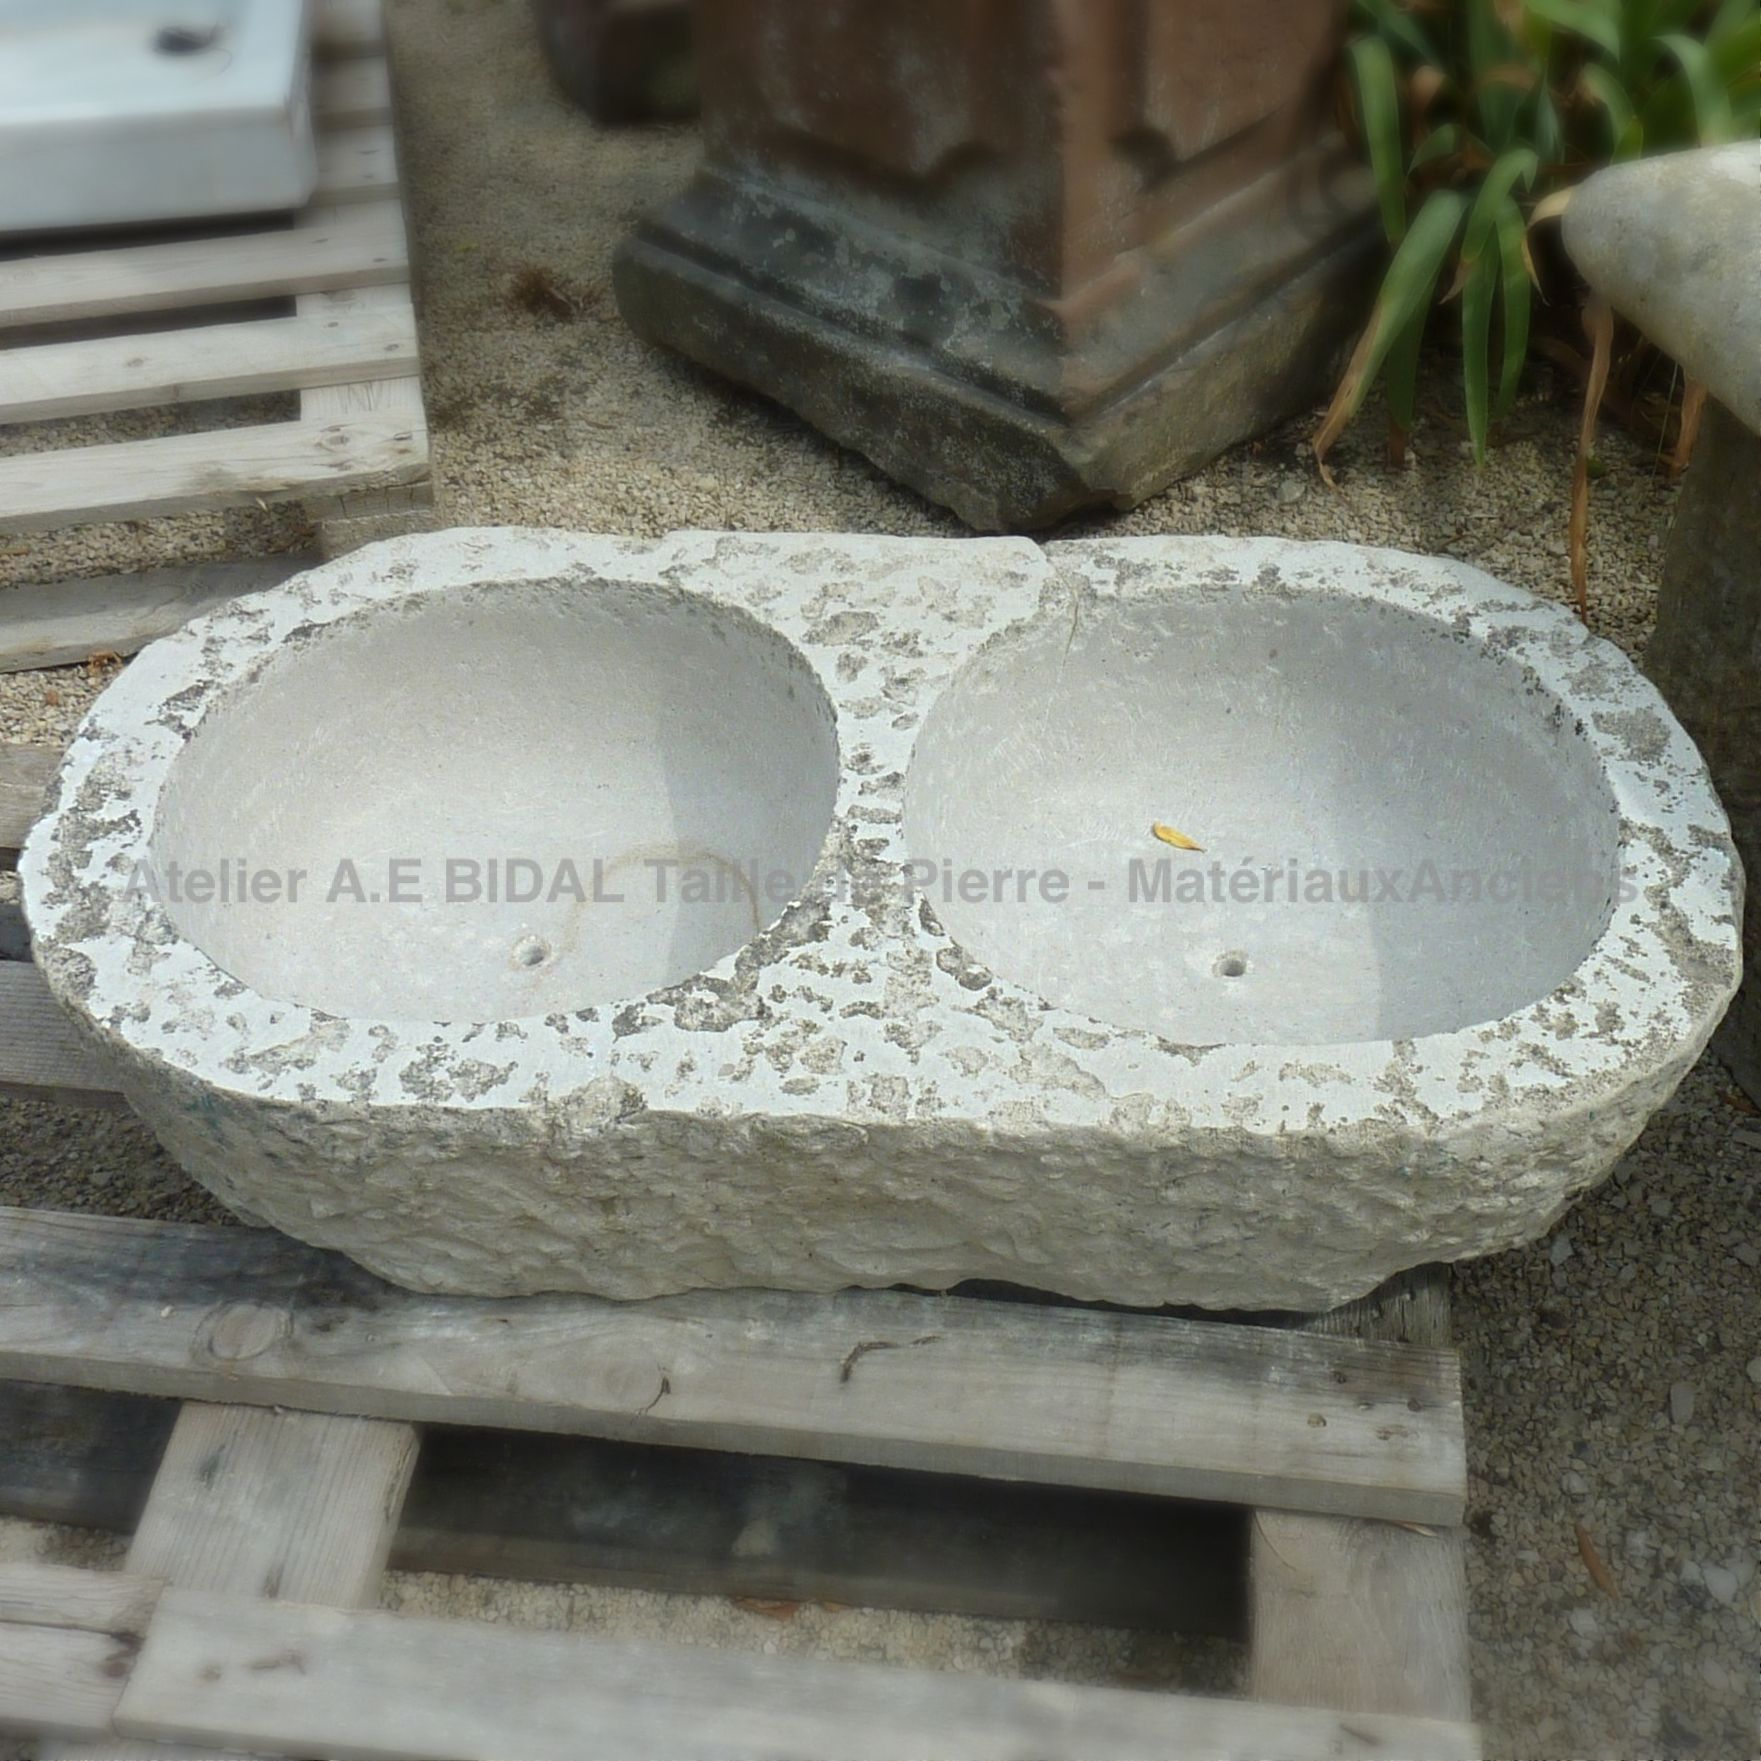 Double washbasin - ancient stone sink with 2 round bowls.